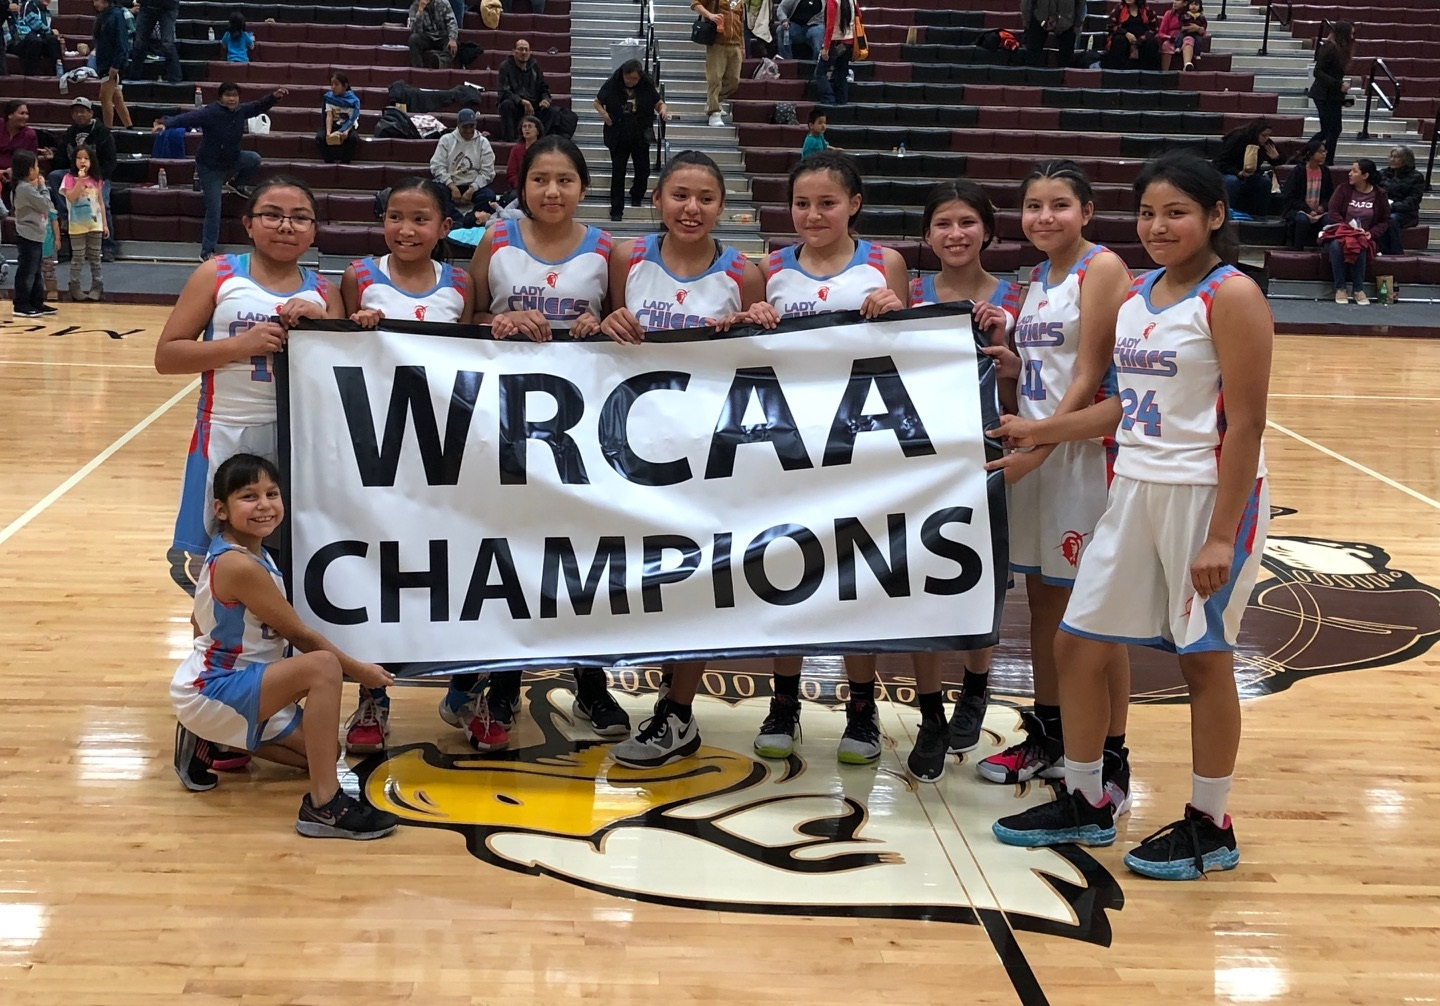 2019 WRCAA Youth Girls Champions - Lady Chiefs